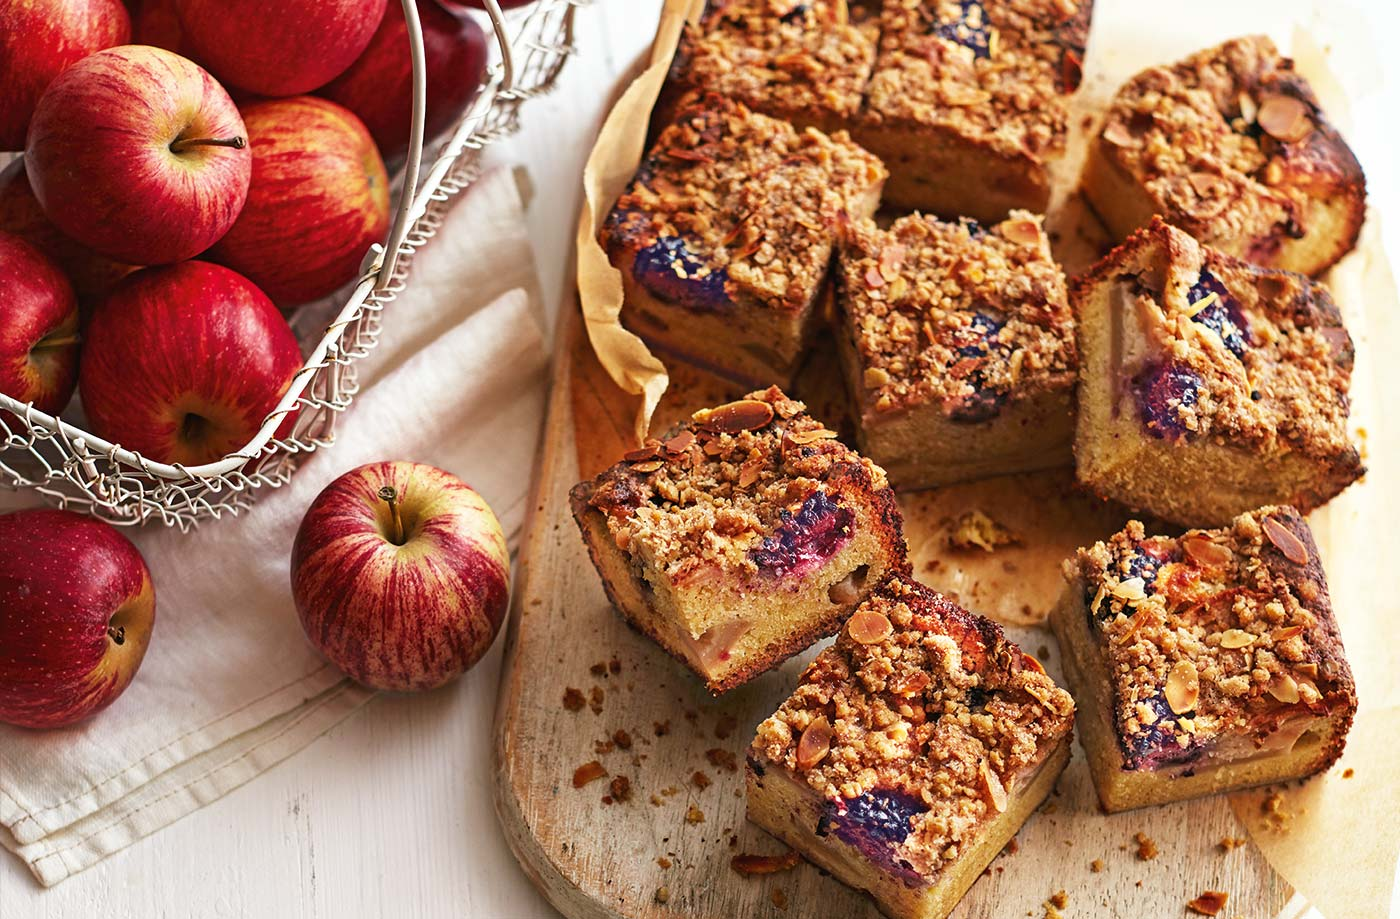 Find a new fruit crumble recipe the whole family will love, from classic apple crumble to new flavour twists.